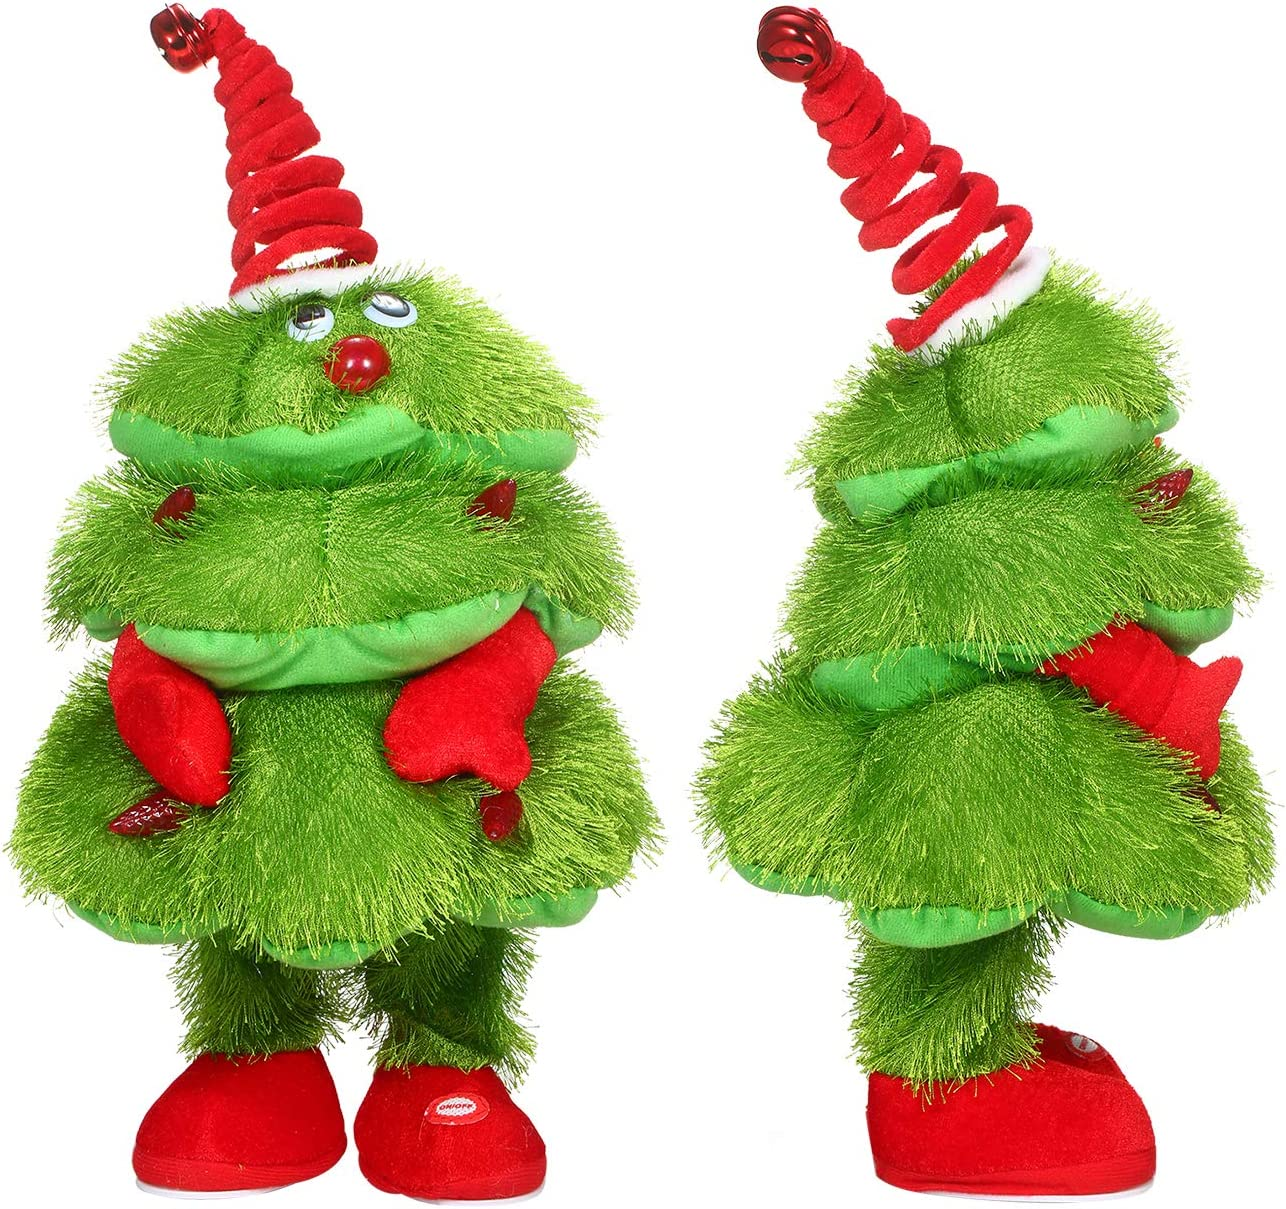 Green Battery is not Included Decdeal Doll Christmas Electric Plush Doll Christmas Stuffed Doll Singing Dancing Glowing Christmas Tree Fun Decorations Gifts for Kids